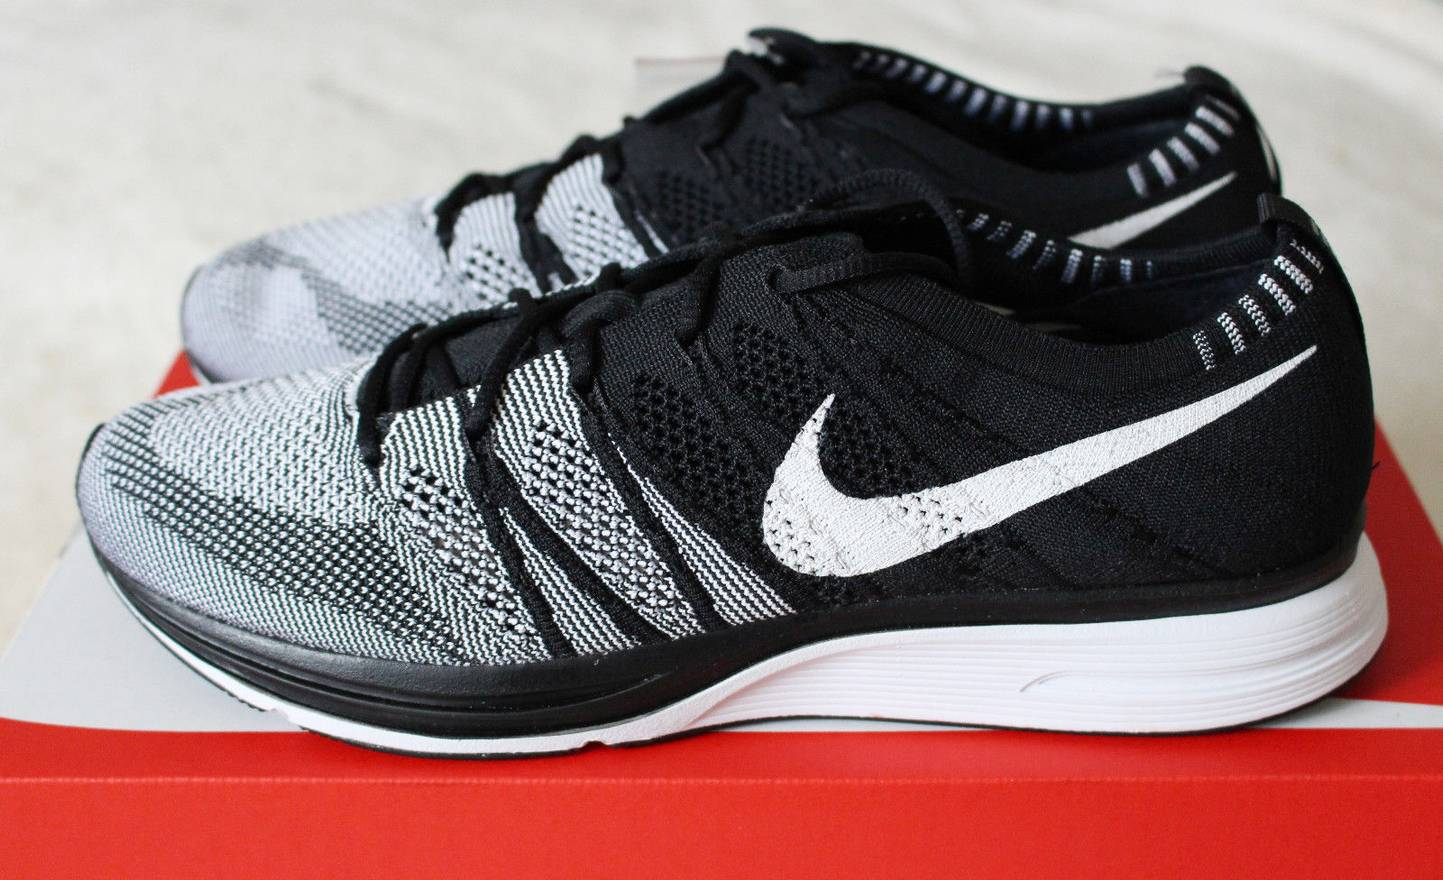 7c8d25ed3e3d ... clearance nike nike flyknit trainer black white oreo ah8396 005 size 10  yeezy nmd boost size